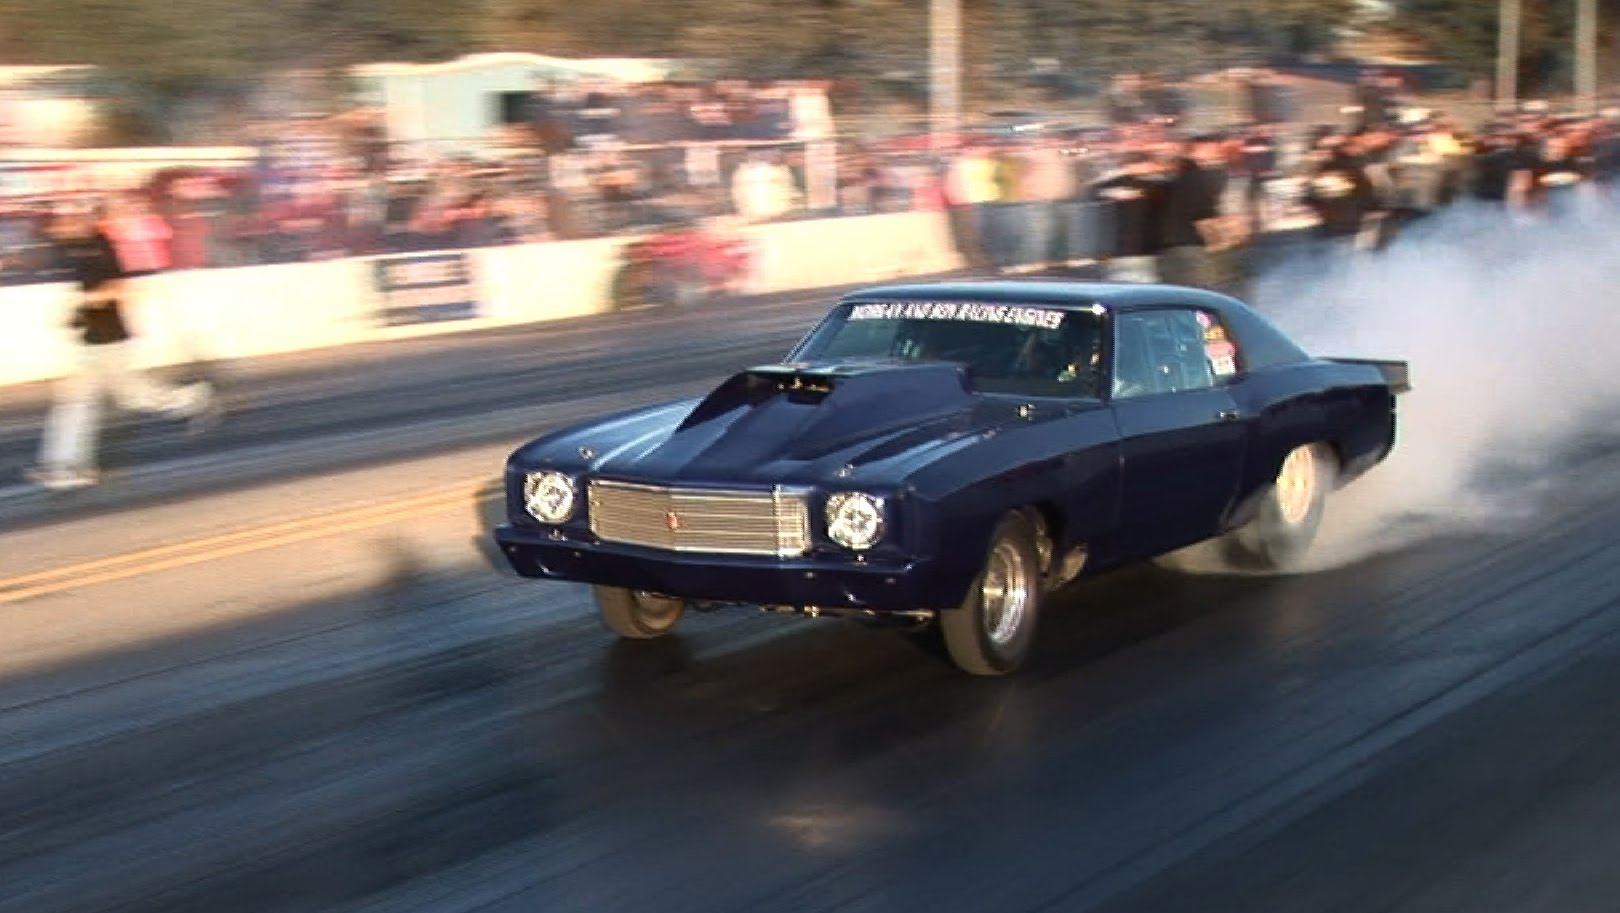 Mad Street Outlaw Drag Racing Action At OKC Big Tire No Prep Drag